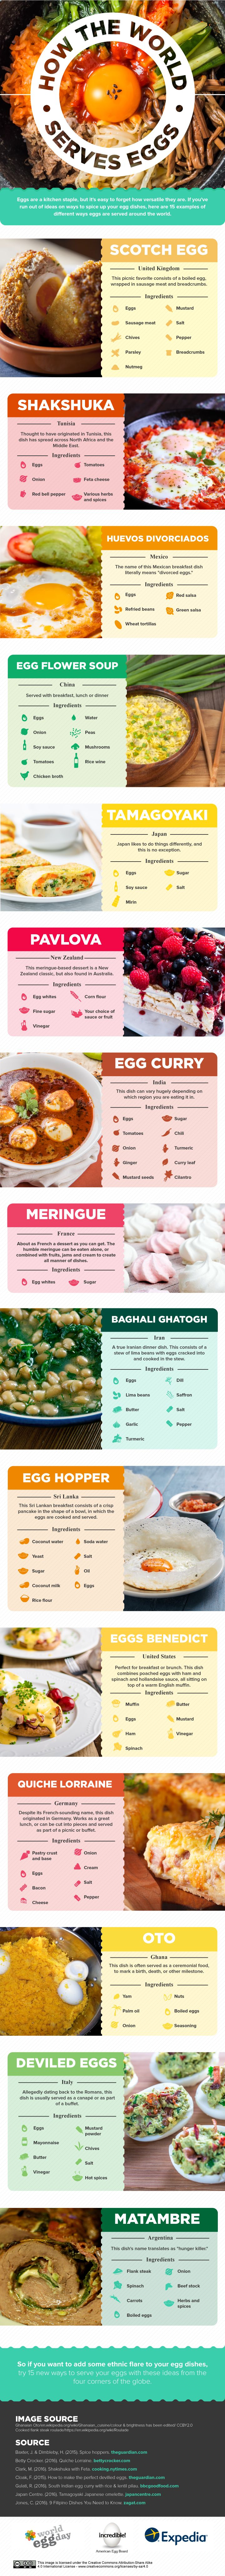 How The World Serves Eggs #Infographic #Eggs #Food